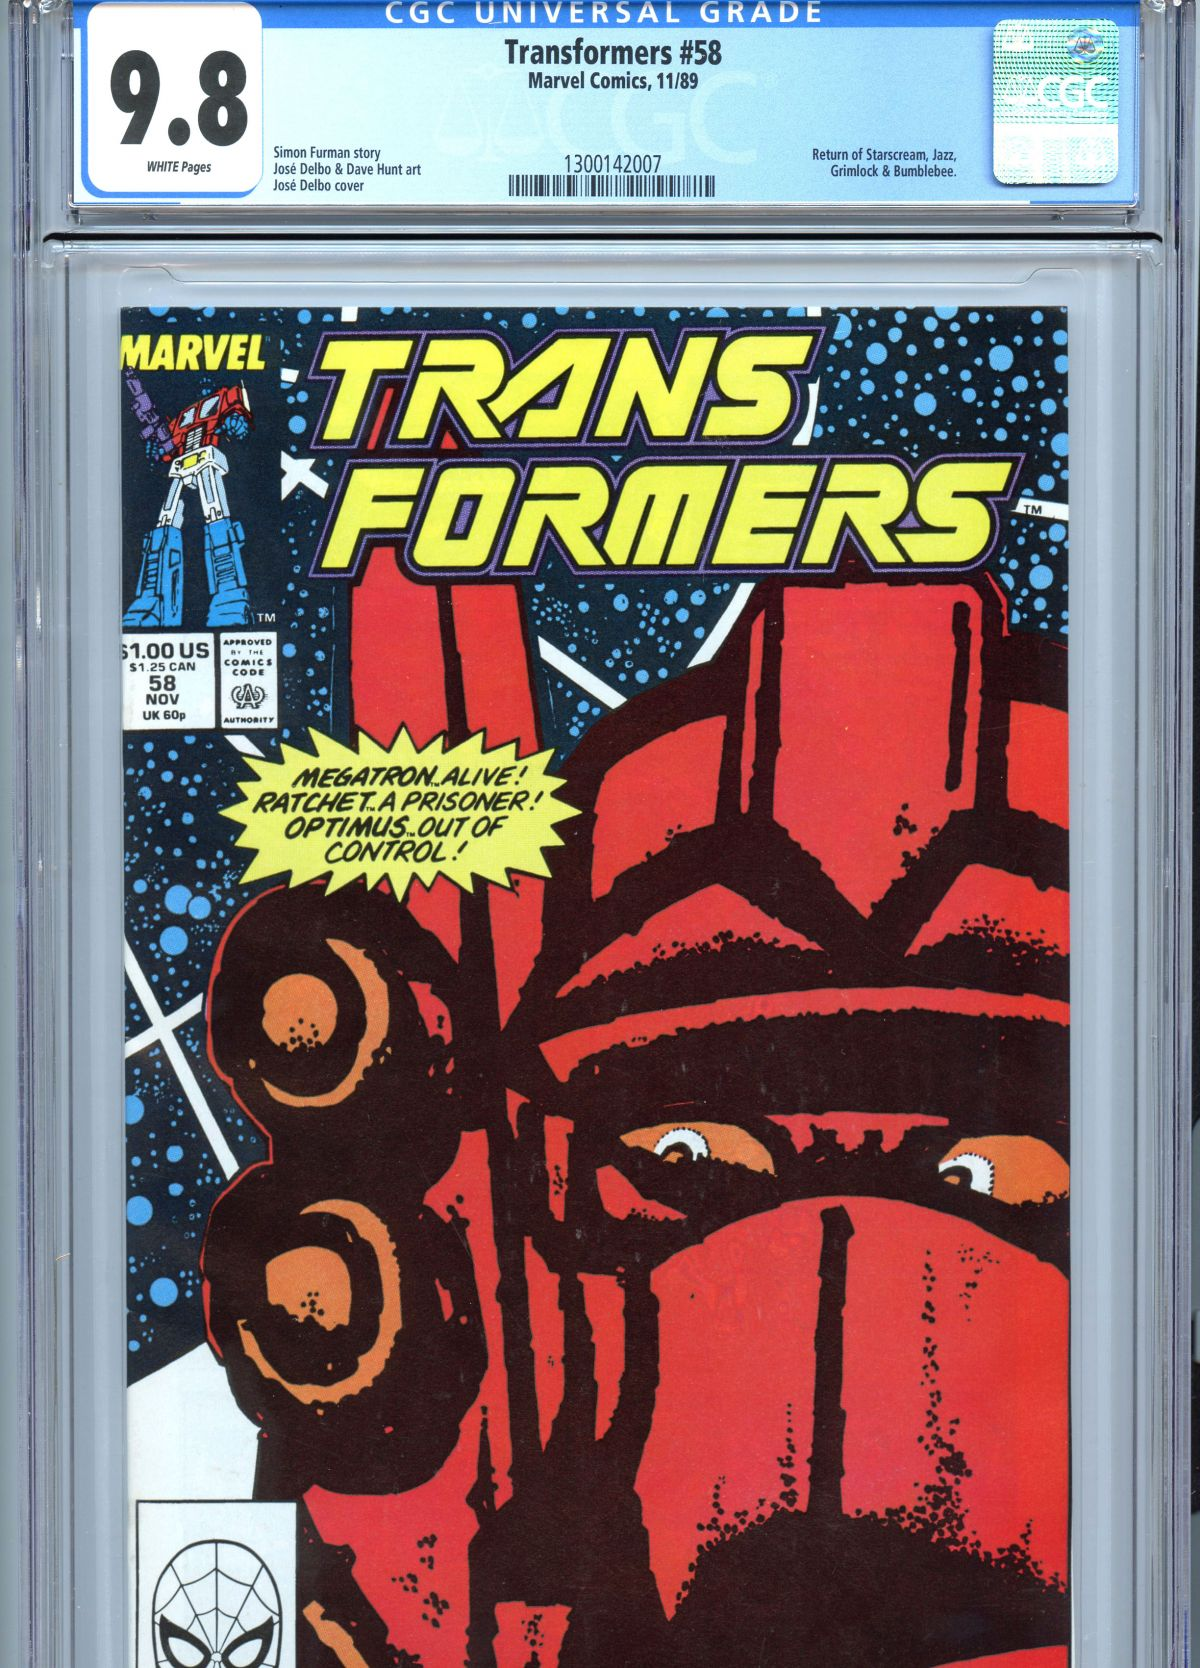 Mister Miracle #1 CGC 9 0 Transformers Marvel in CGC 9 8 NTT #2 CGC